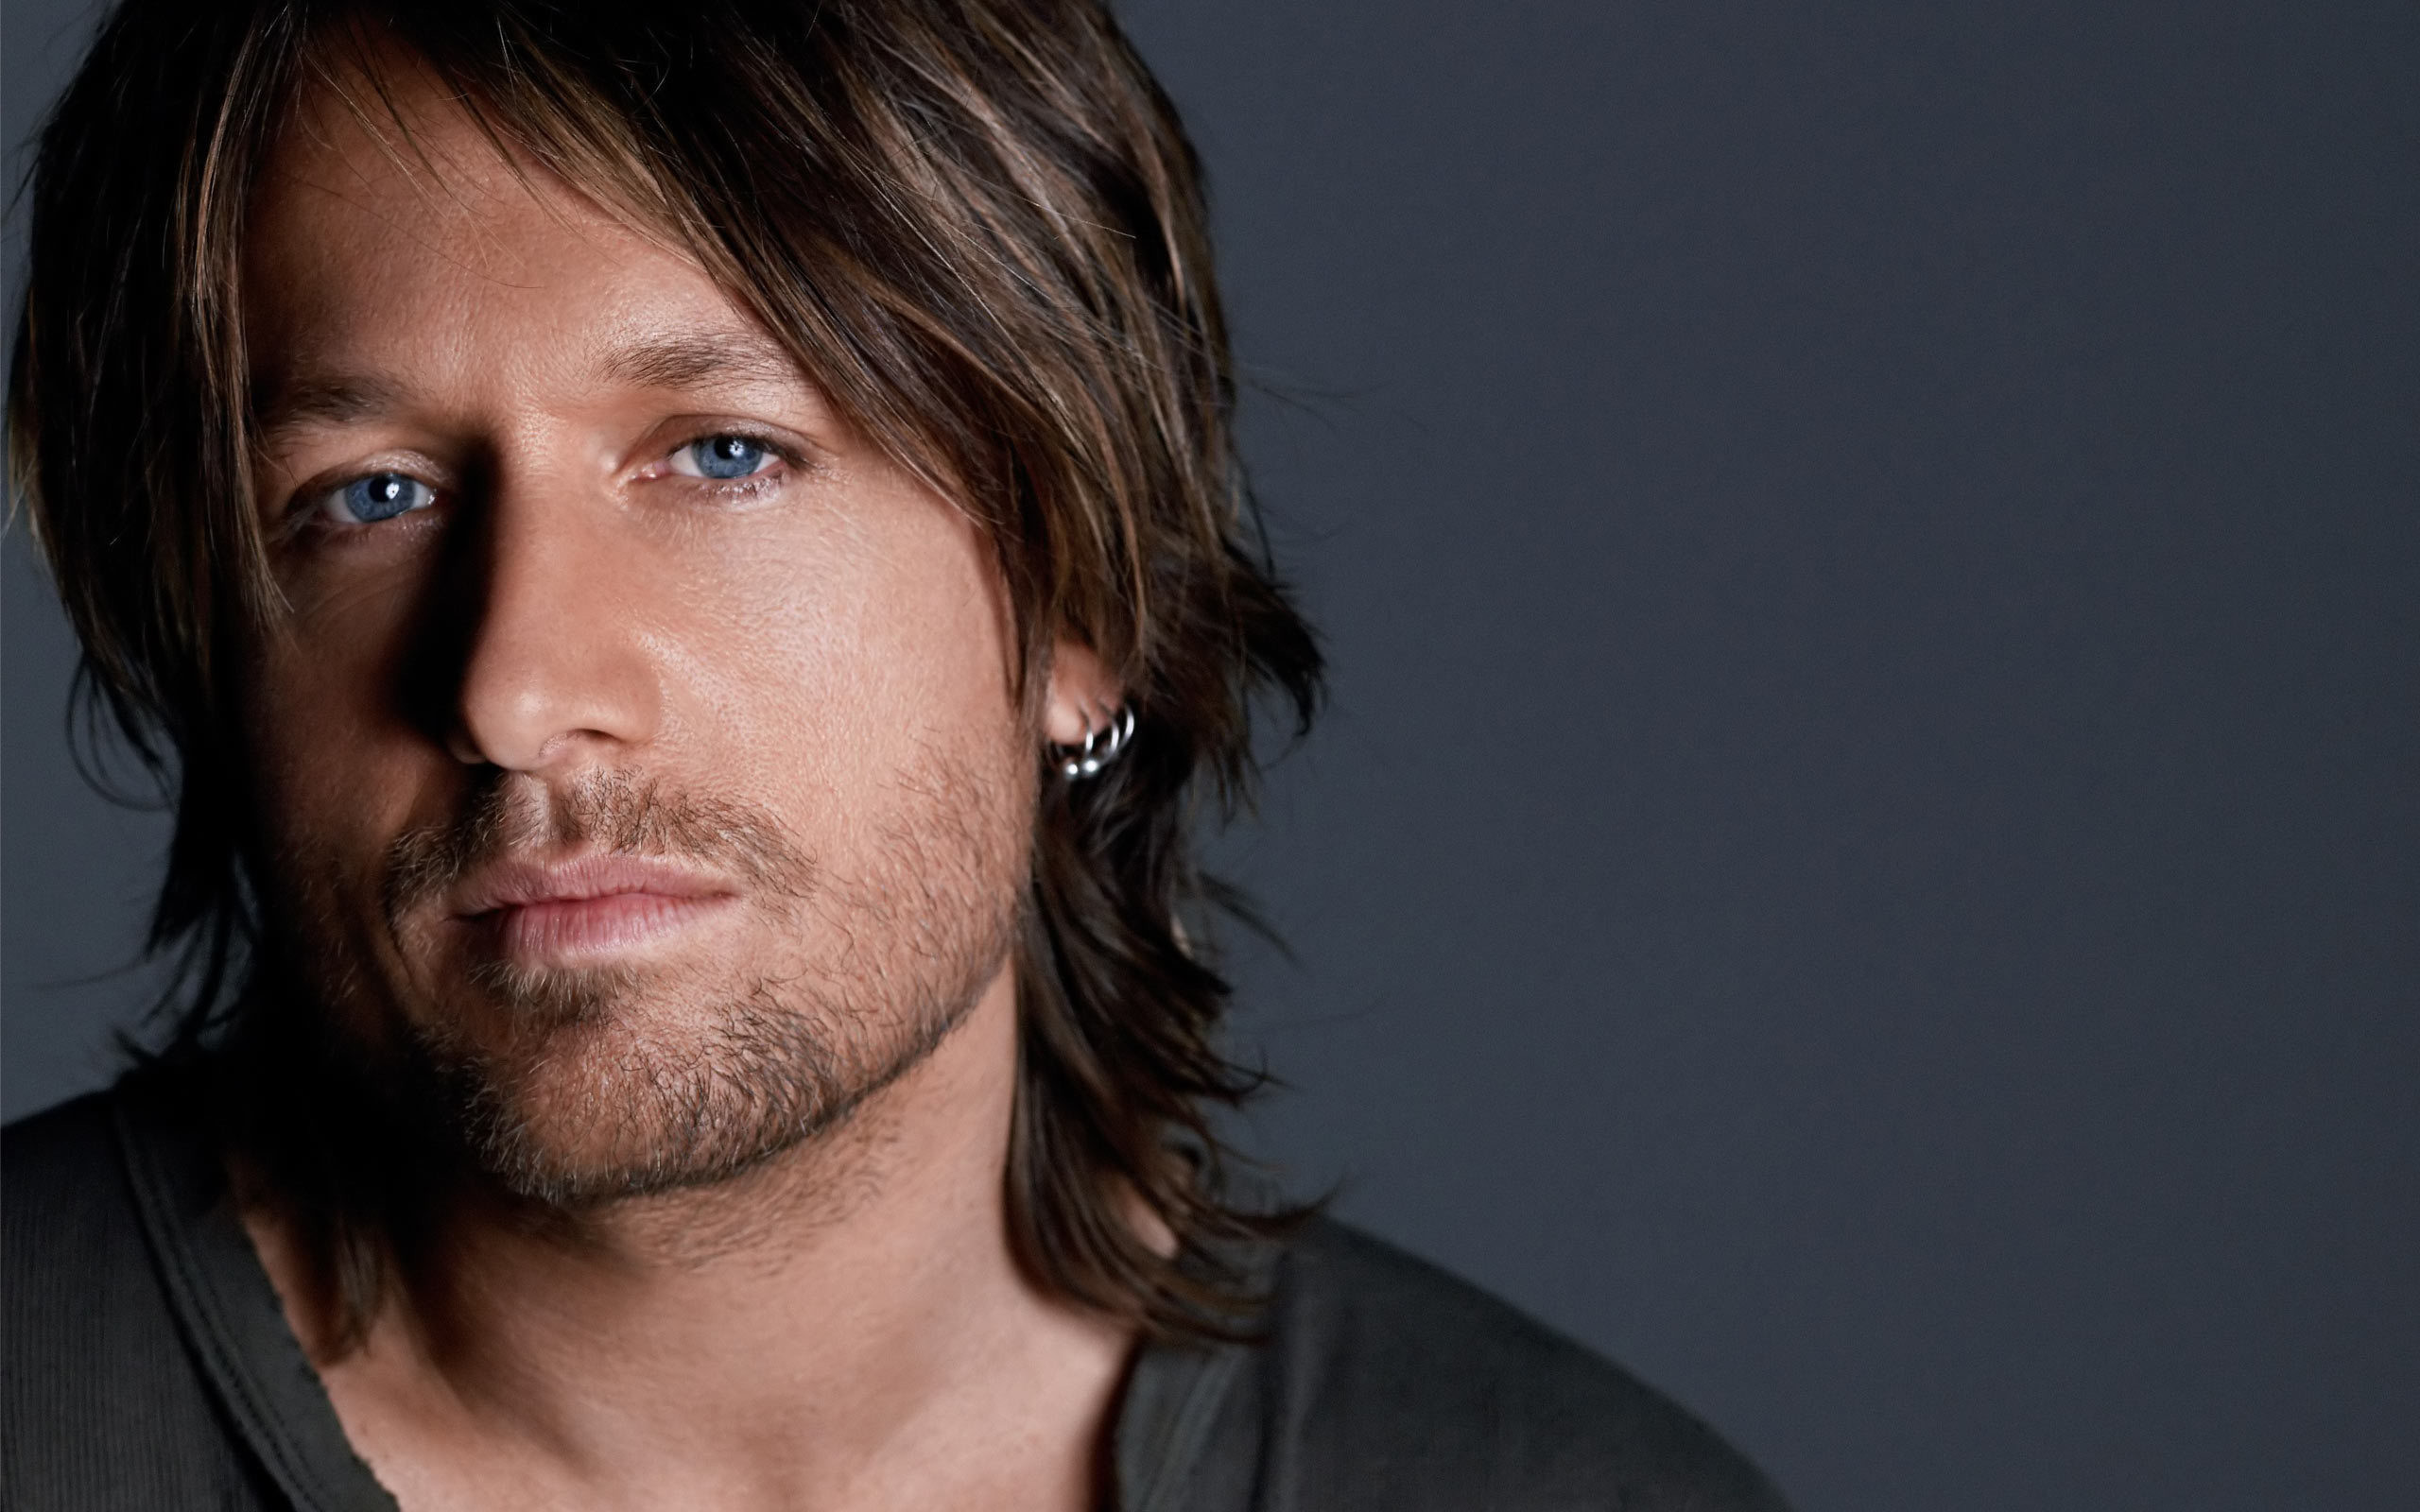 2560x1600 original wallpaper download: Mustache, Guy, singer, Keith urban, new .